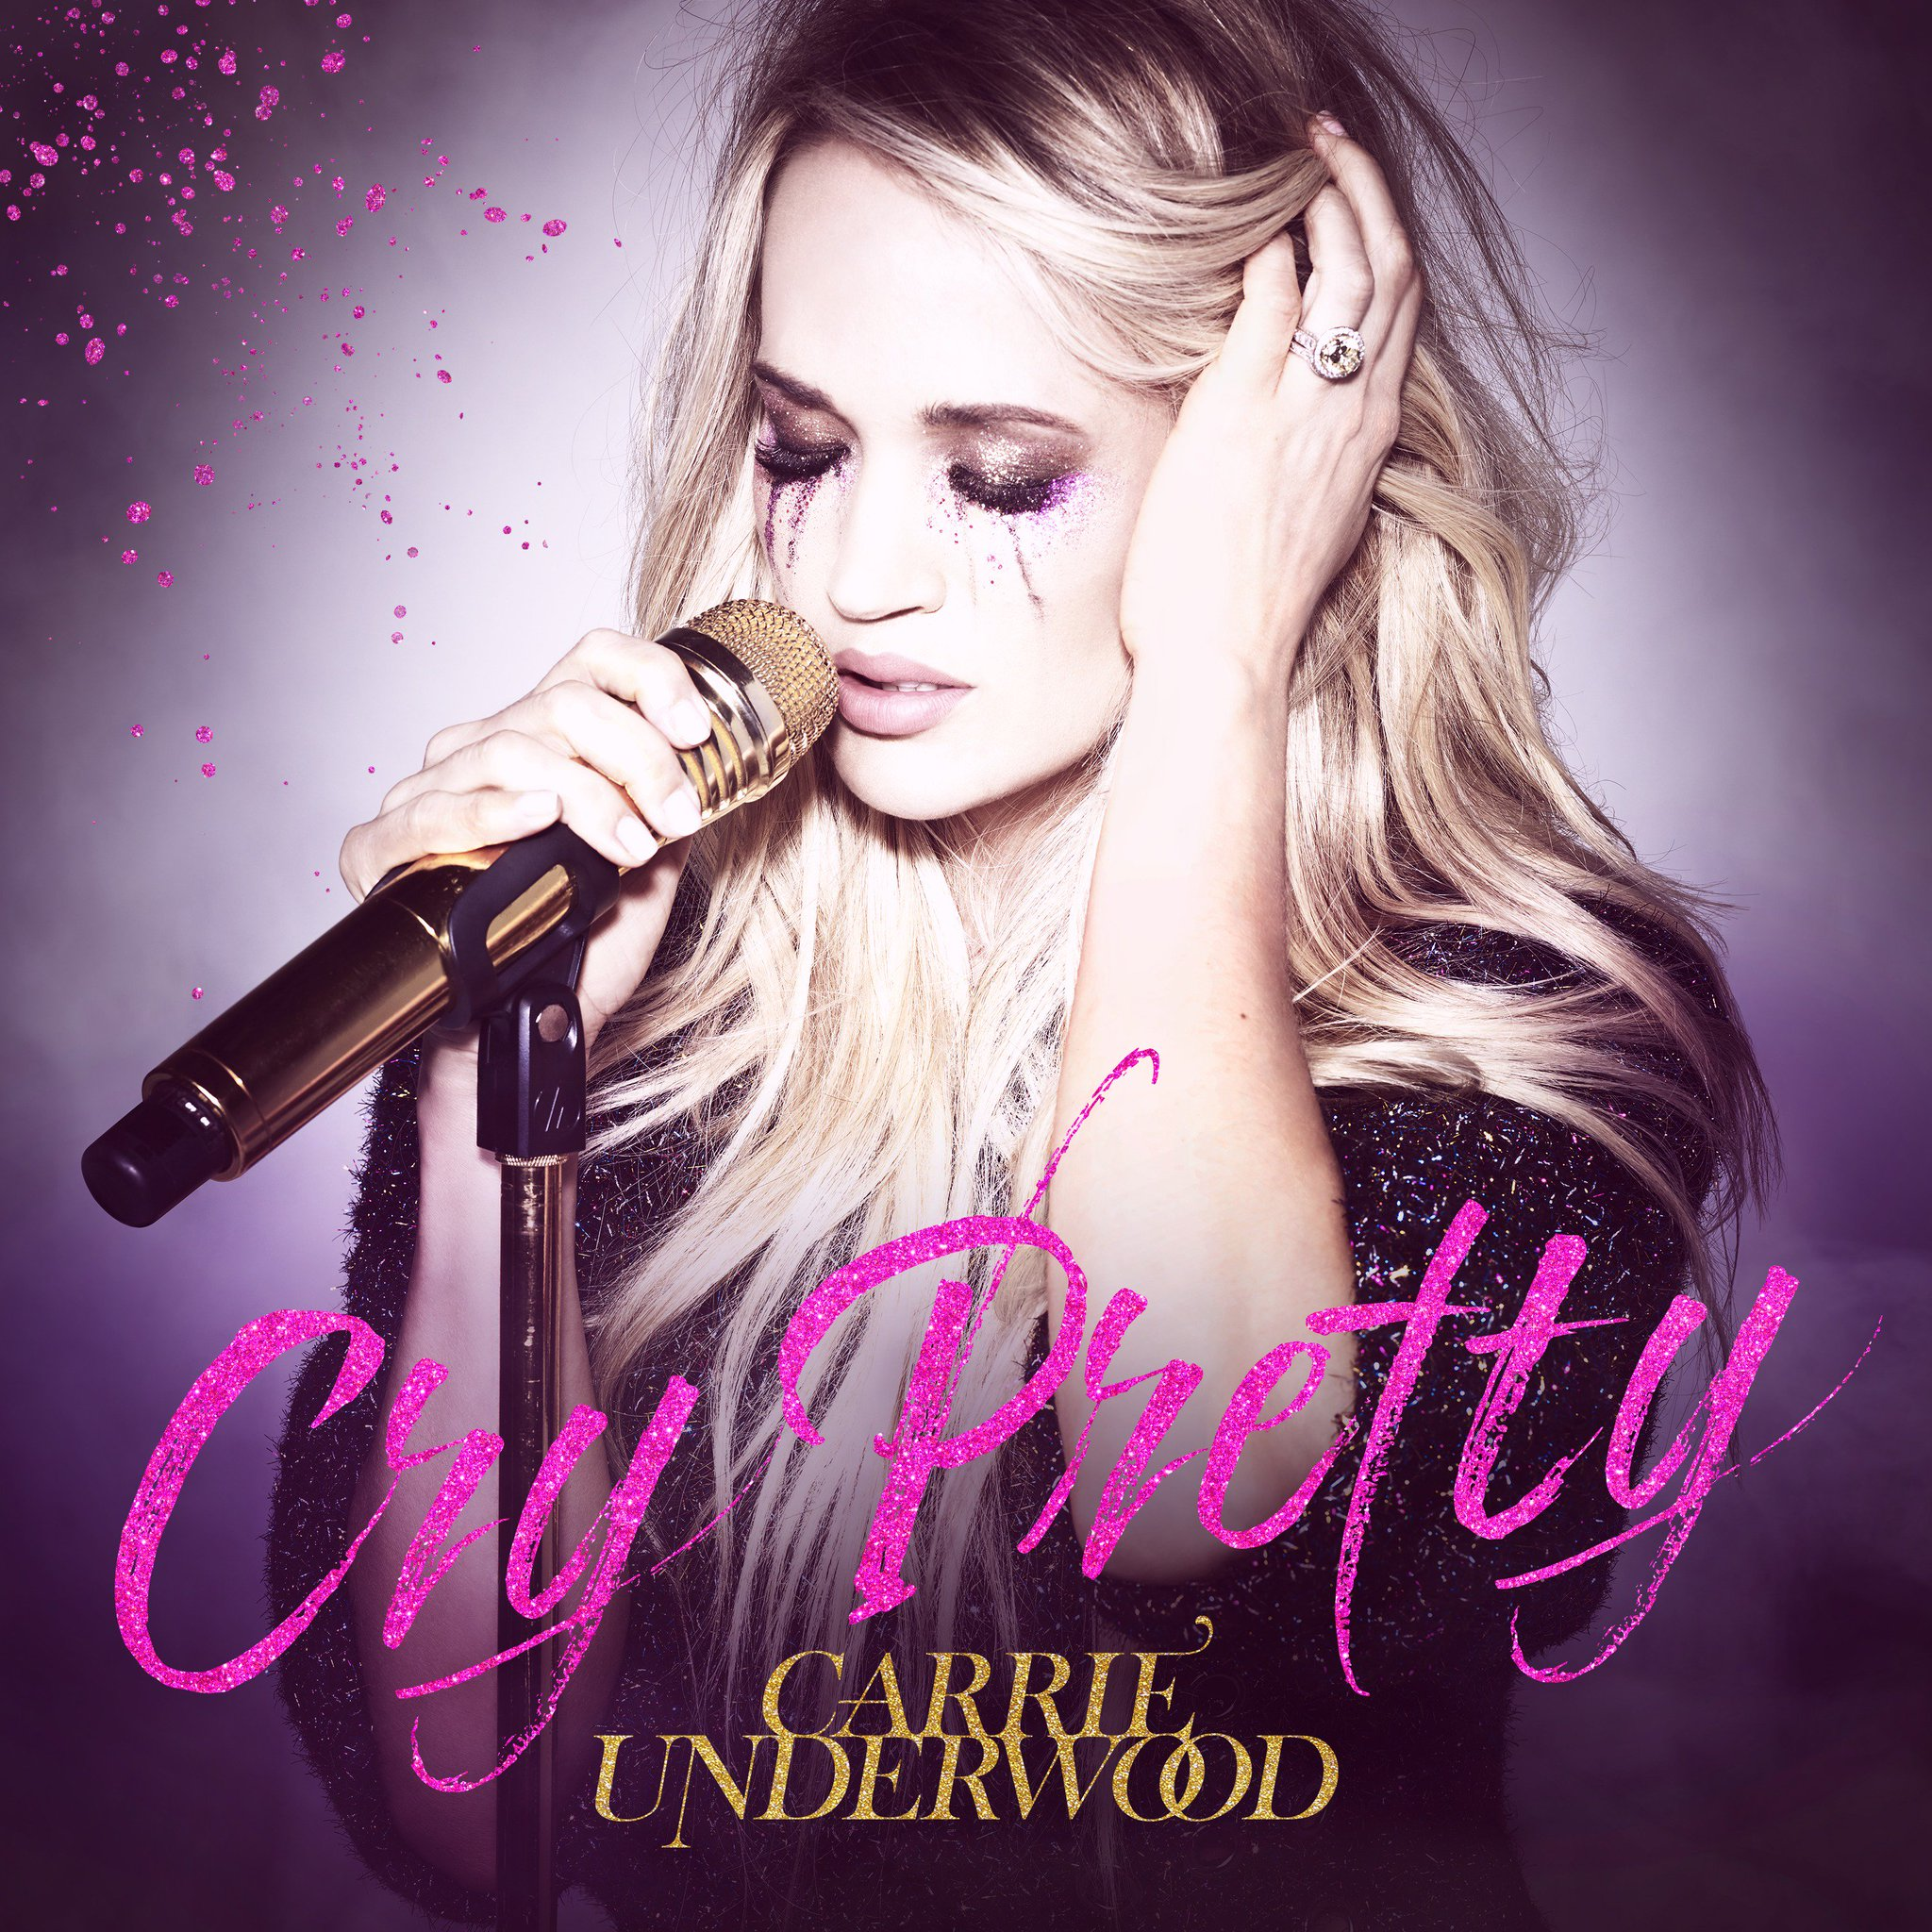 does carrie underwood write her own songs Underwood's track record and influence in the genre make her more determined to write or find and release songs that resonate with her and celebrate love and strength in other women.